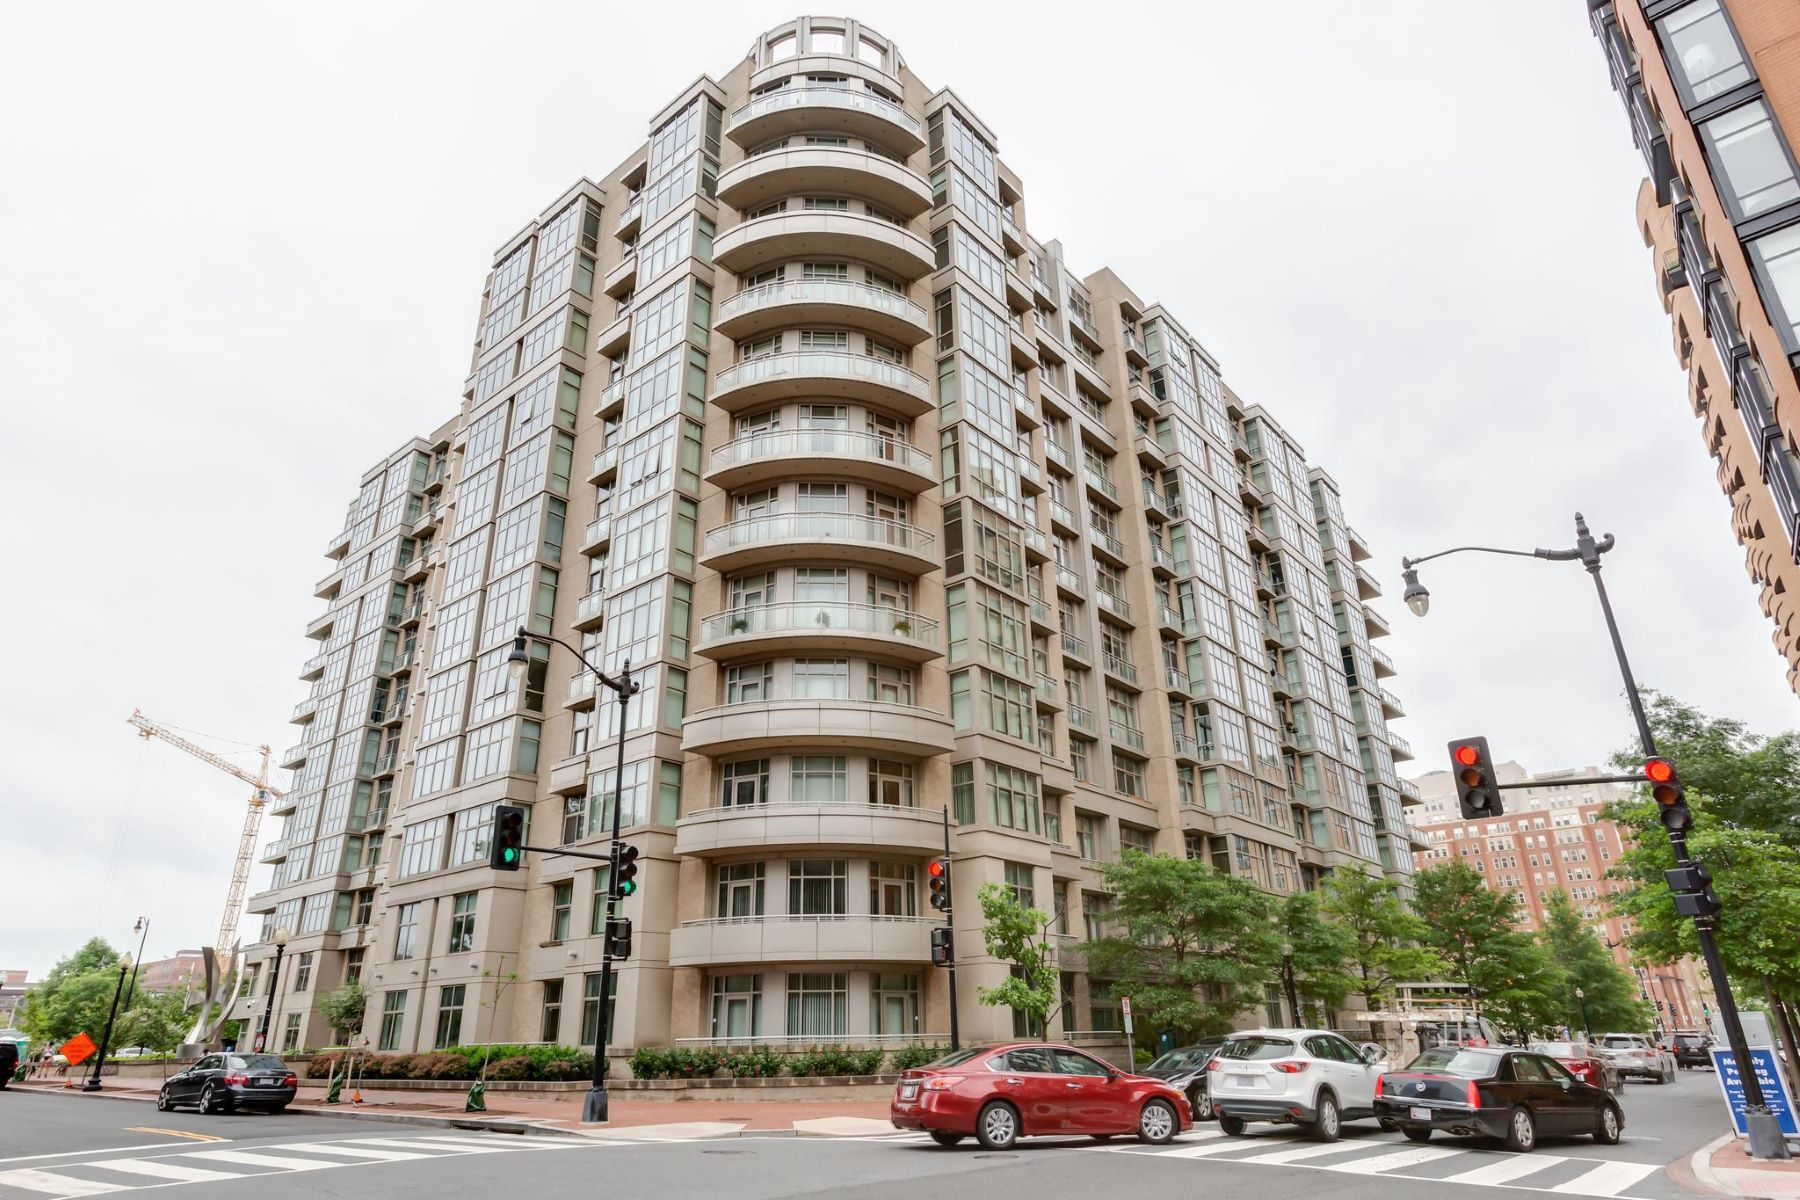 Condominium for Sale at 811 4th St NW #713 Washington, District Of Columbia 20001 United States